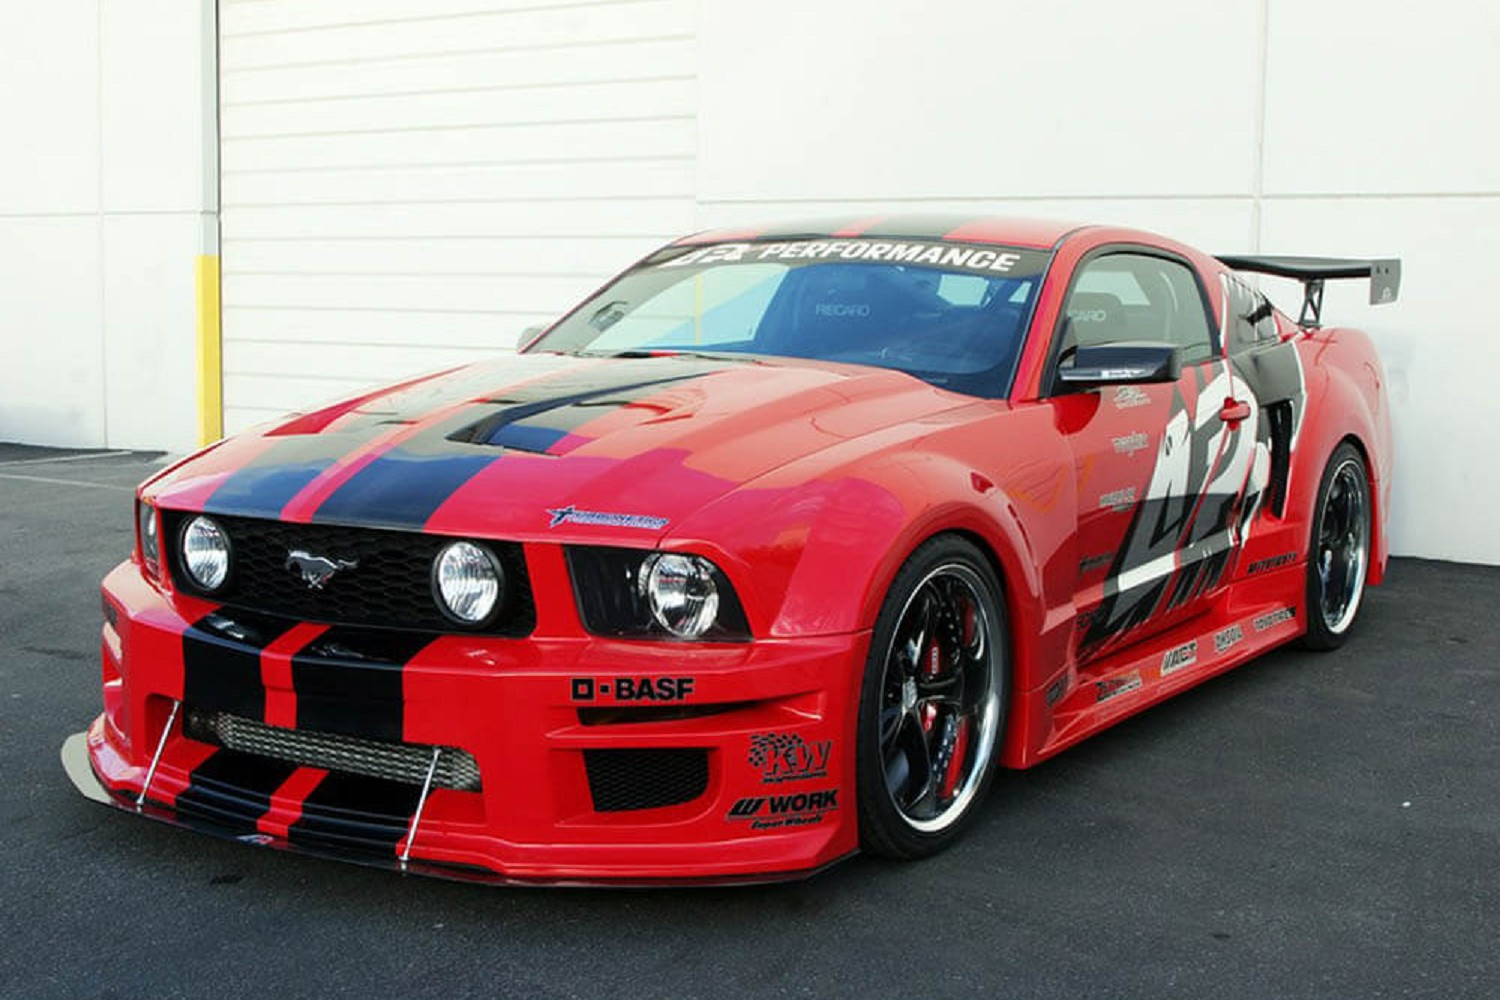 Apr performance mustang gt r widebody aerodynamic kit 05 09